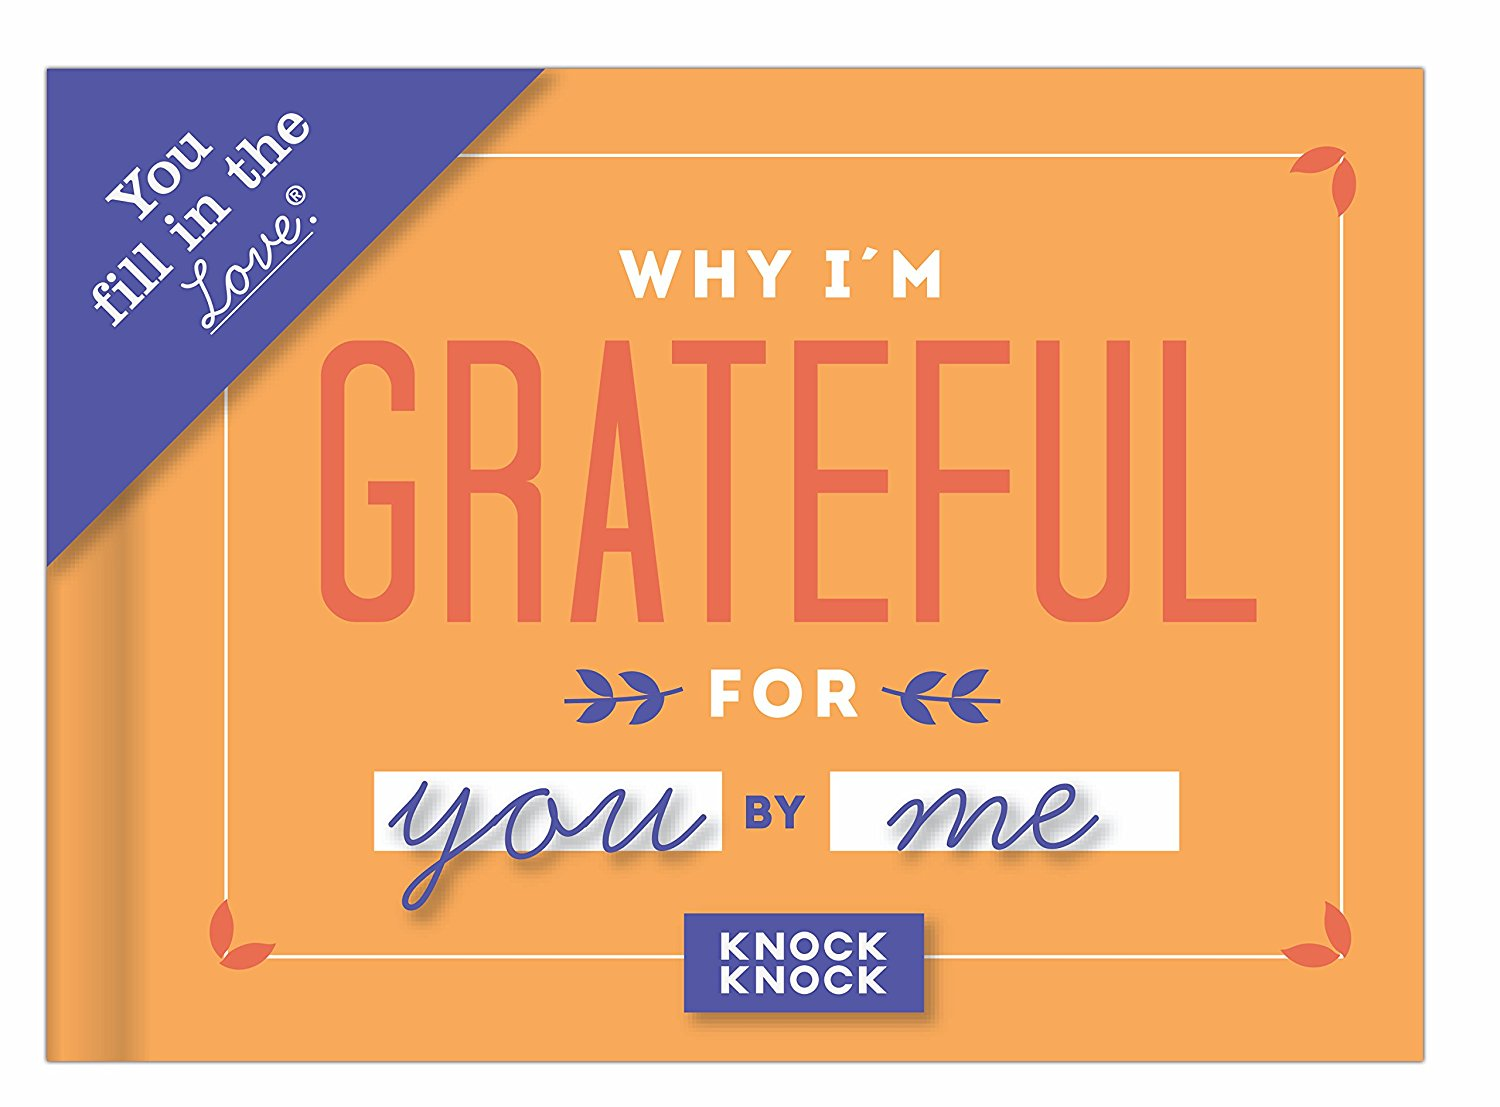 Tell them how grateful you are for them. - $